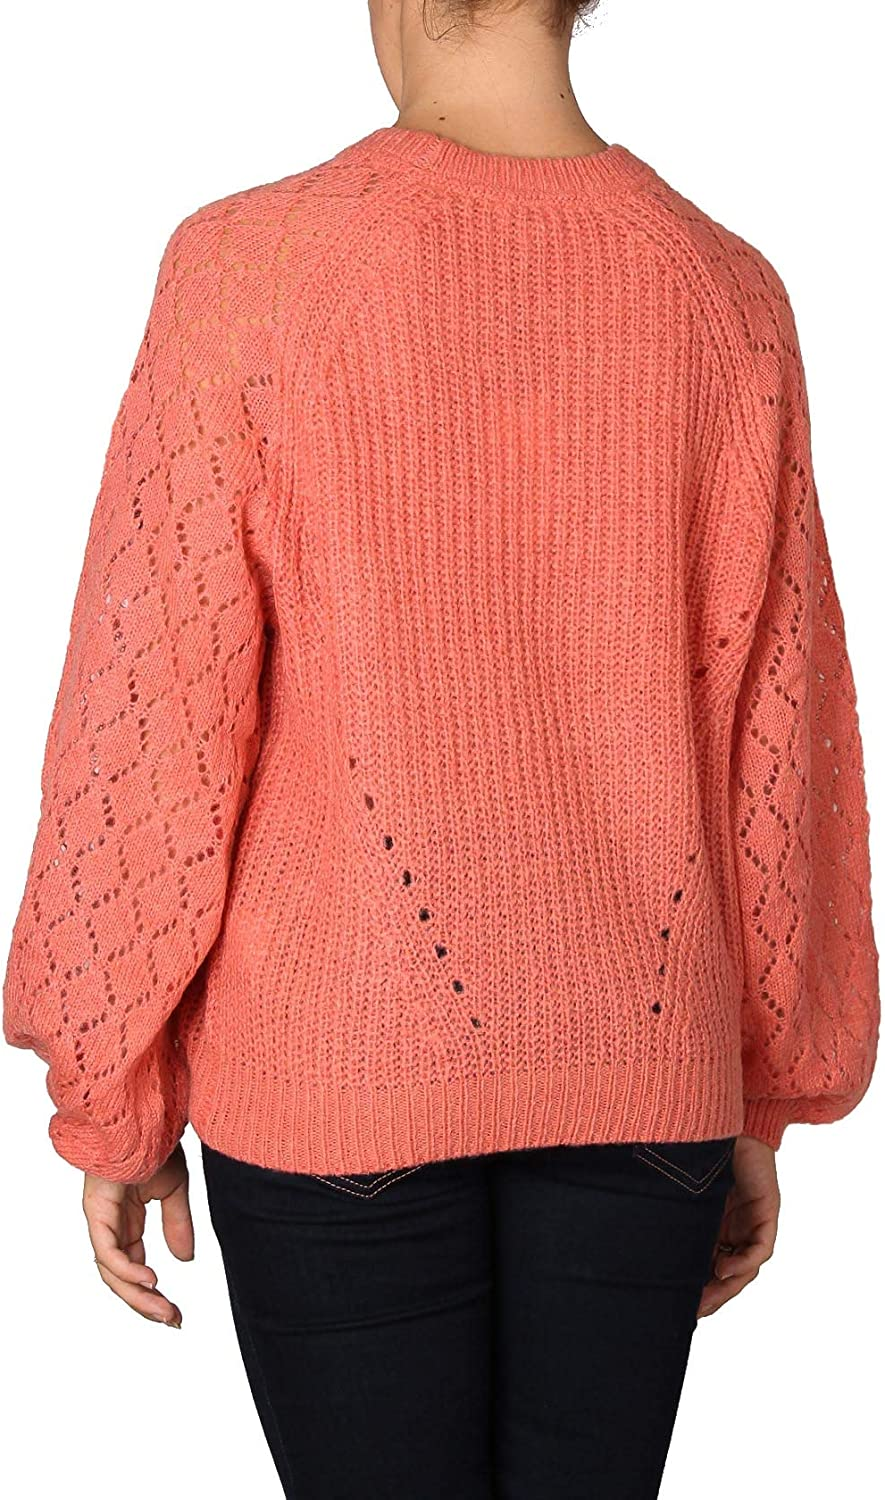 Pepe Jeans PL701546 Pullover Frauen